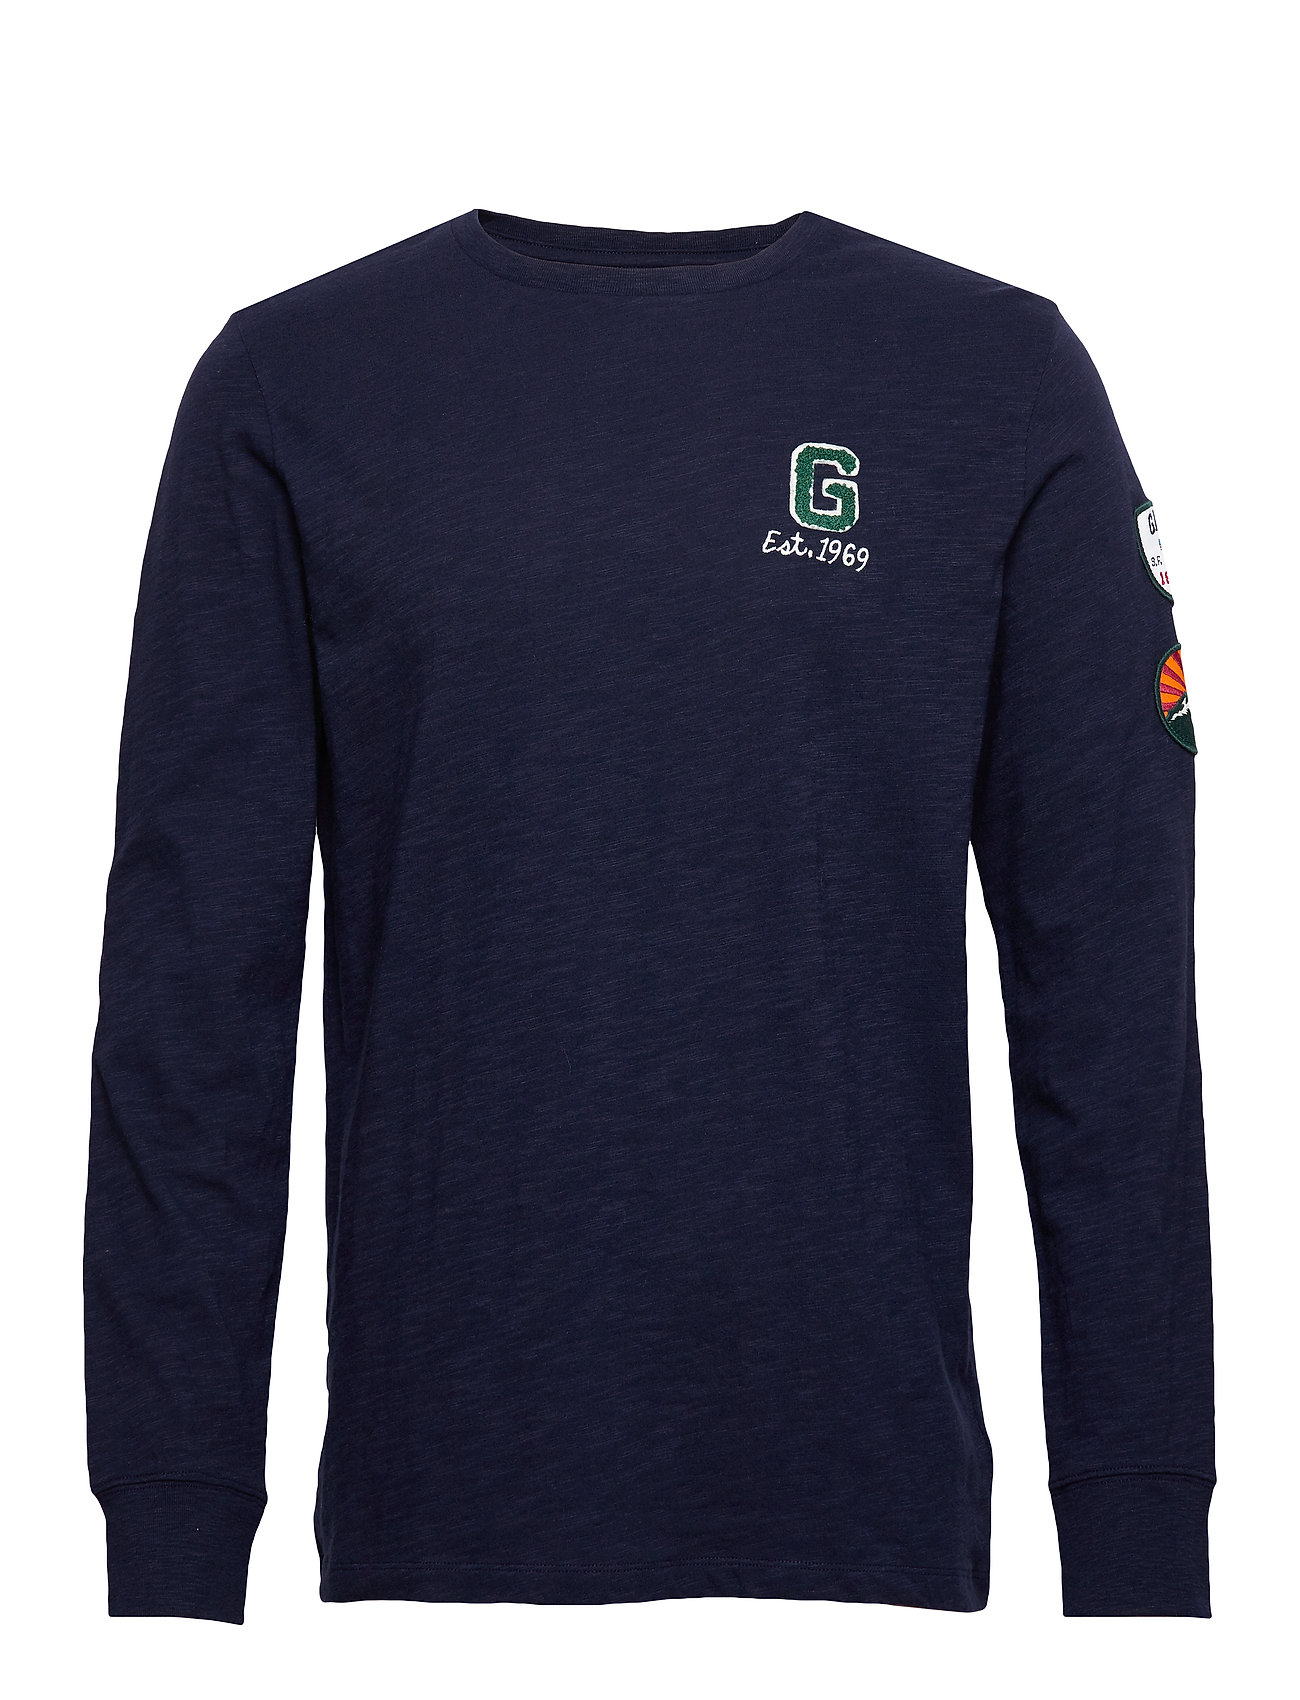 GAP LS G PATCH T - TAPESTRY NAVY